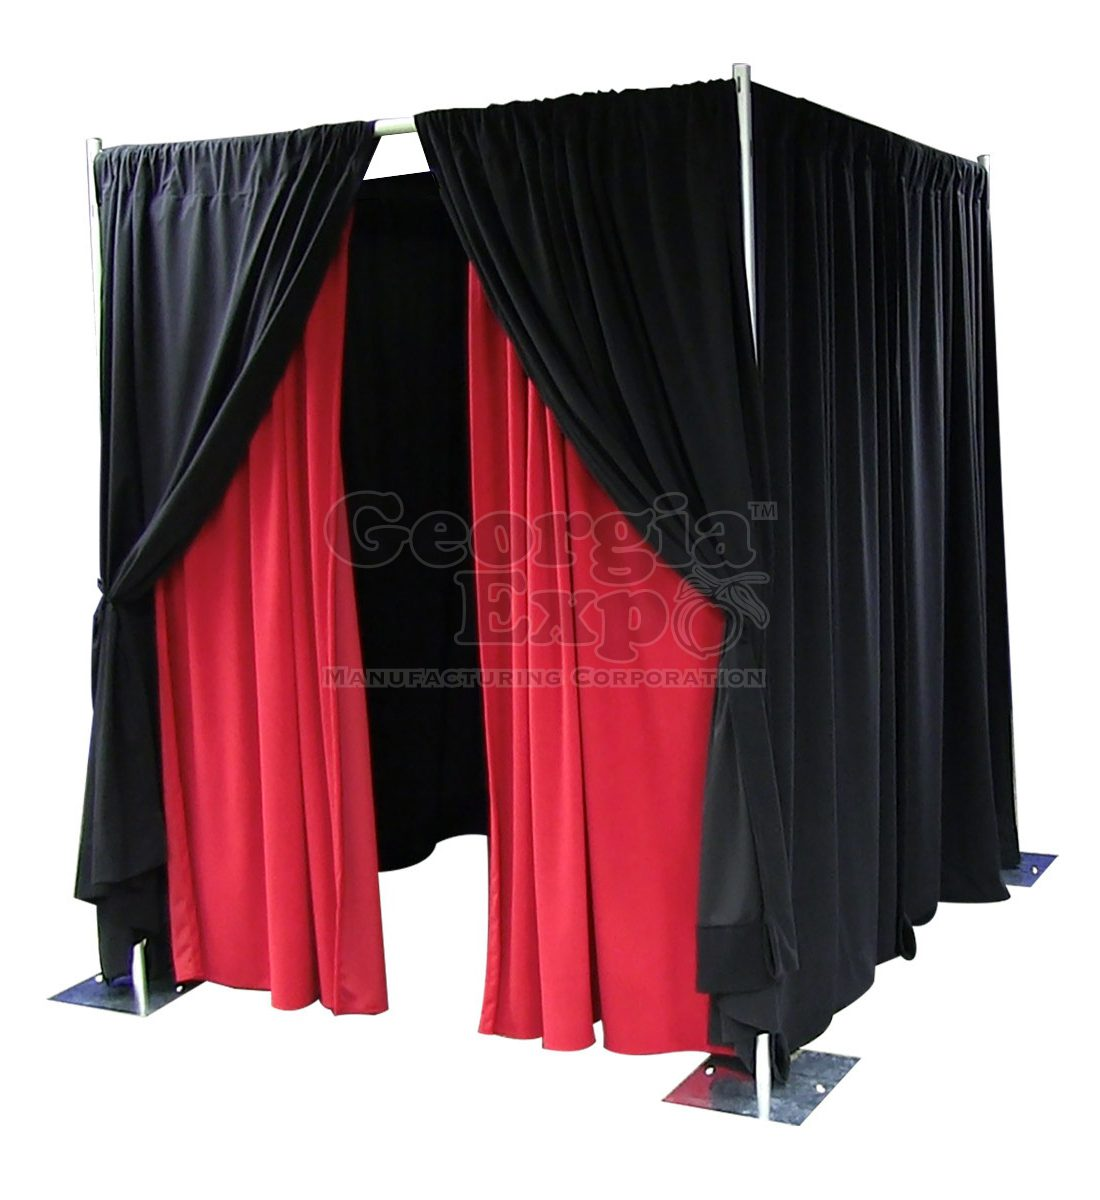 rental and party wall drape banjo backdrop color kit product feet wheel drapes ft black pipe fixed kits height back high adjustable